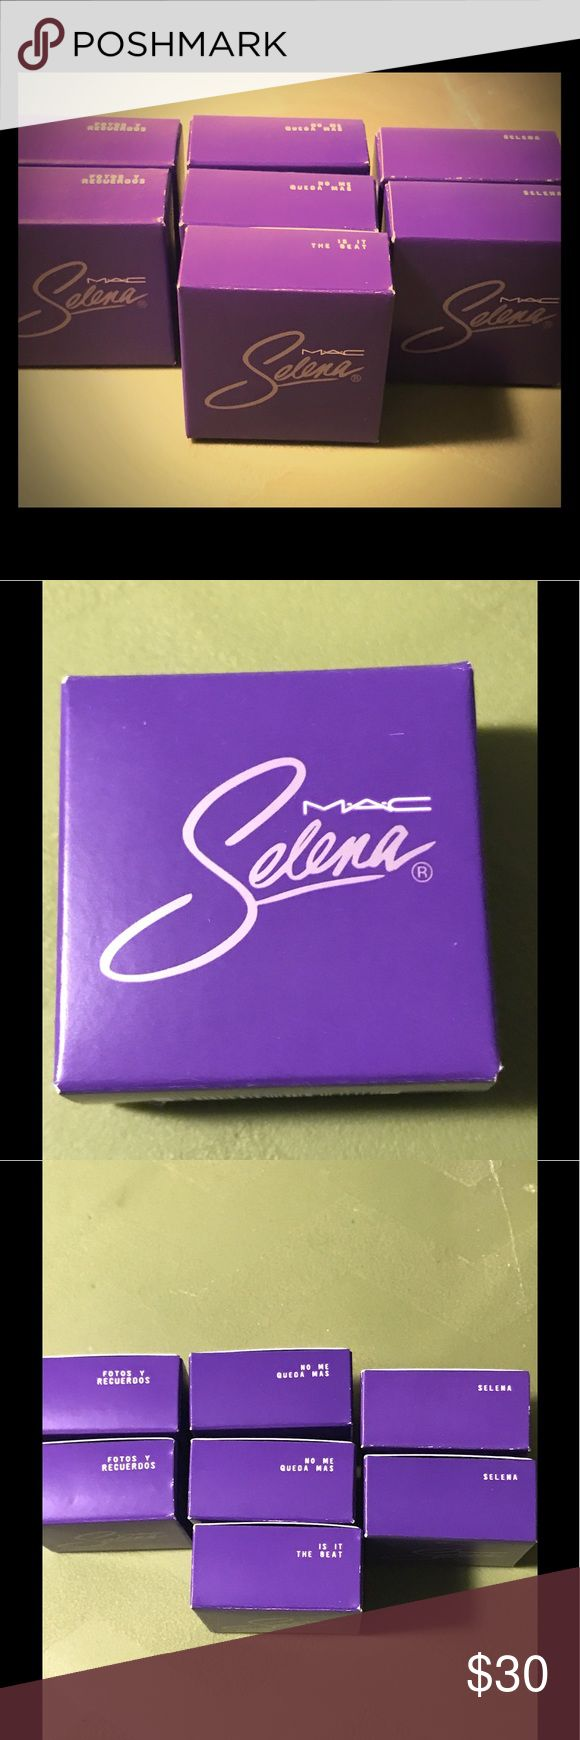 Limited Edition Selena Mac Collection Eyeshadows Eyeshadows from the Selena Mac Collection. Brand new from original launch. MAC Cosmetics Makeup Eyeshadow